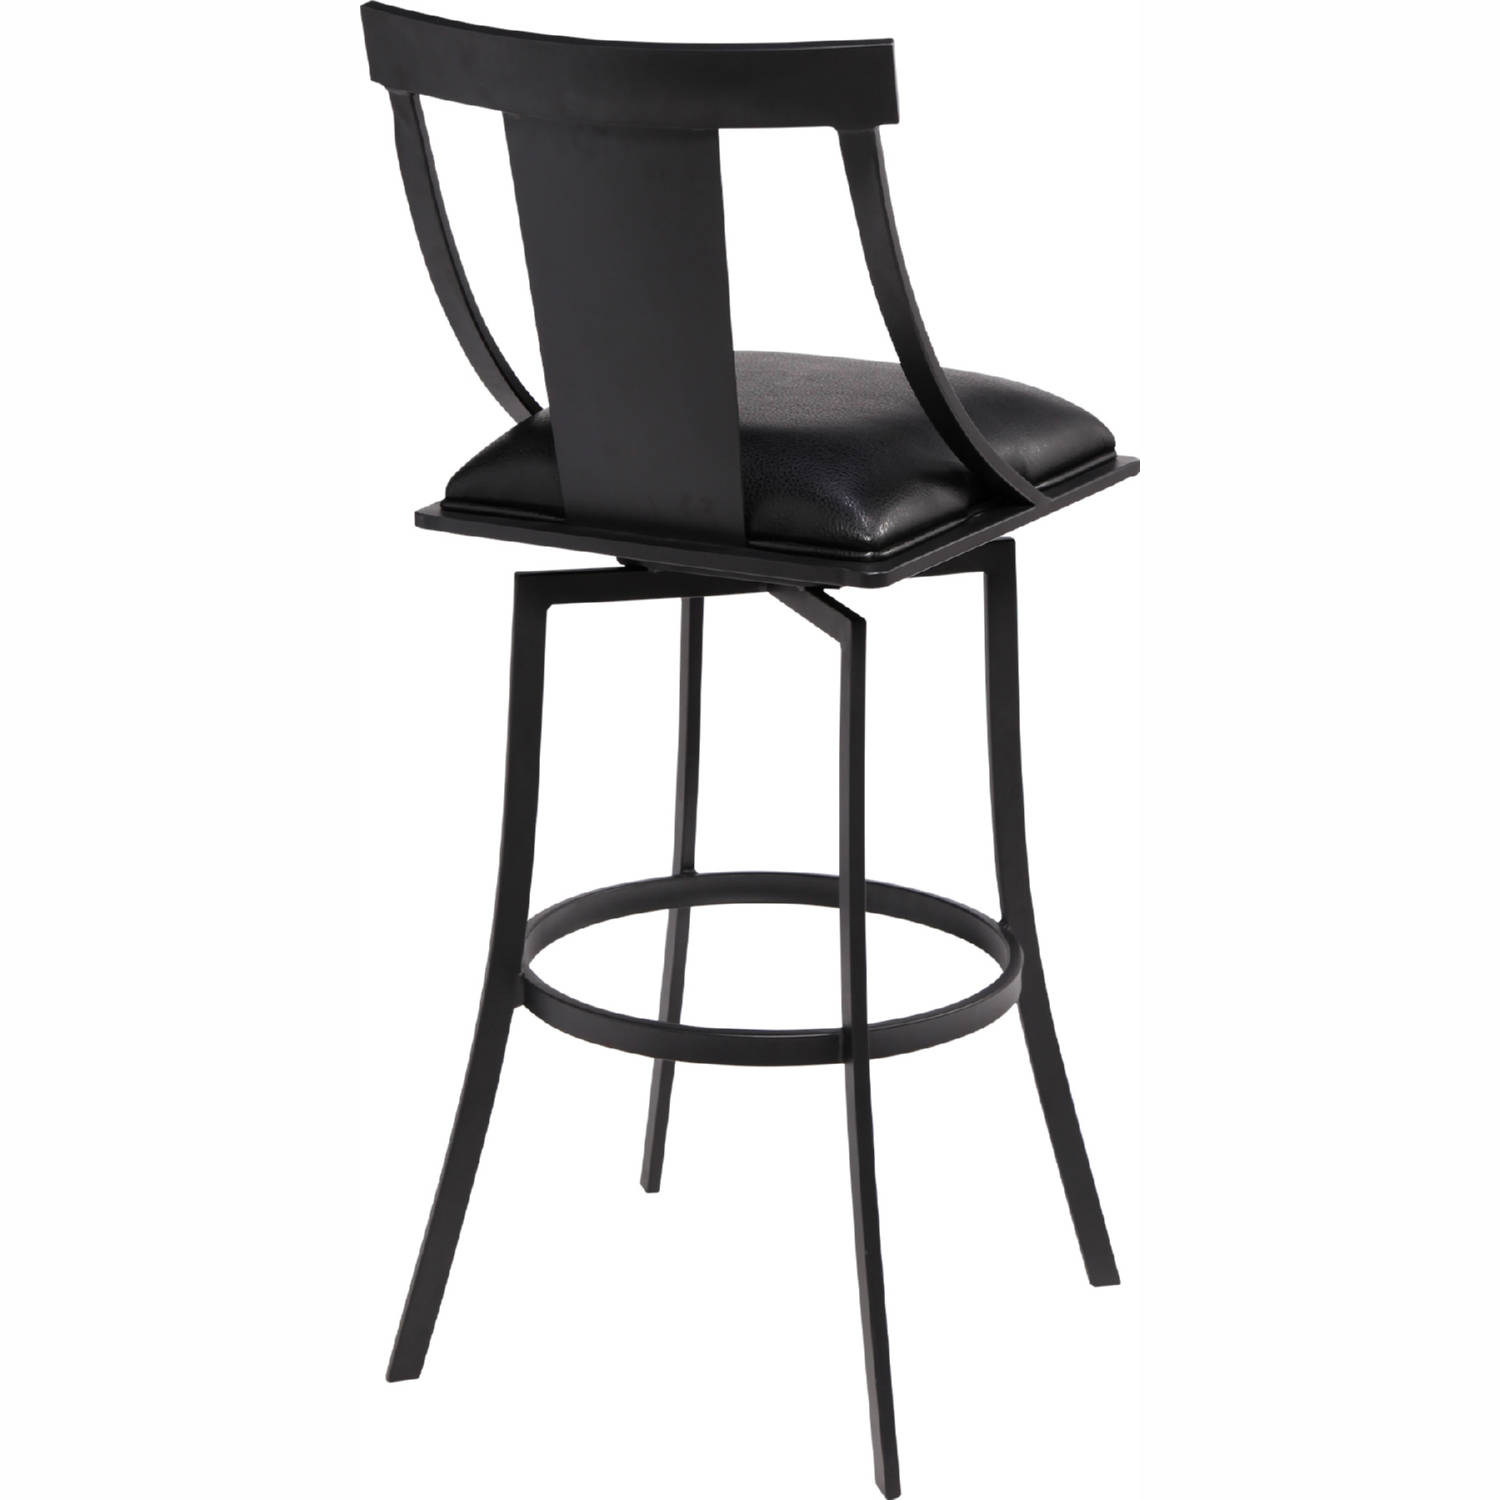 Astonishing Brisbane 30 Bar Stool In Matte Black Metal Black Leatherette By Armen Living Andrewgaddart Wooden Chair Designs For Living Room Andrewgaddartcom